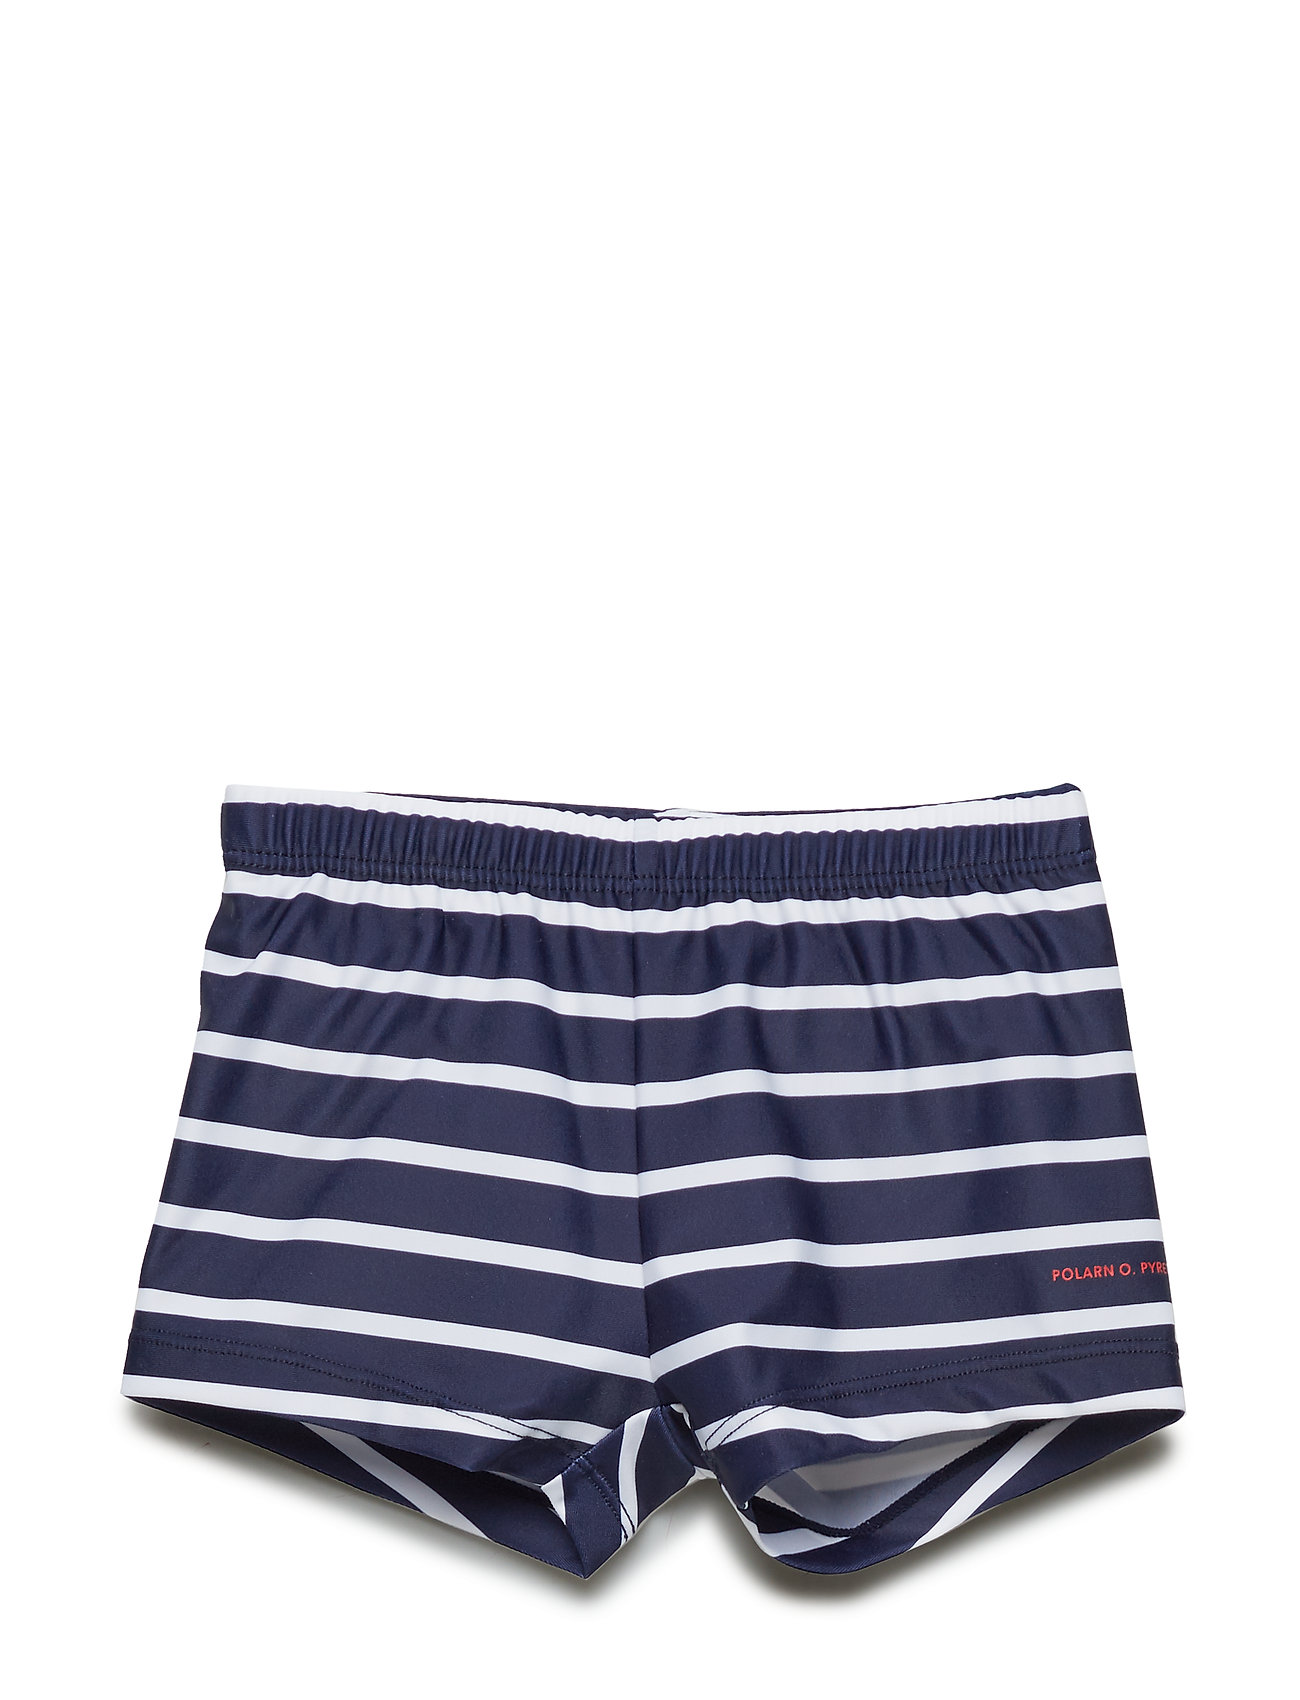 Polarn O. Pyret Swimwear Pants Stripe Baby